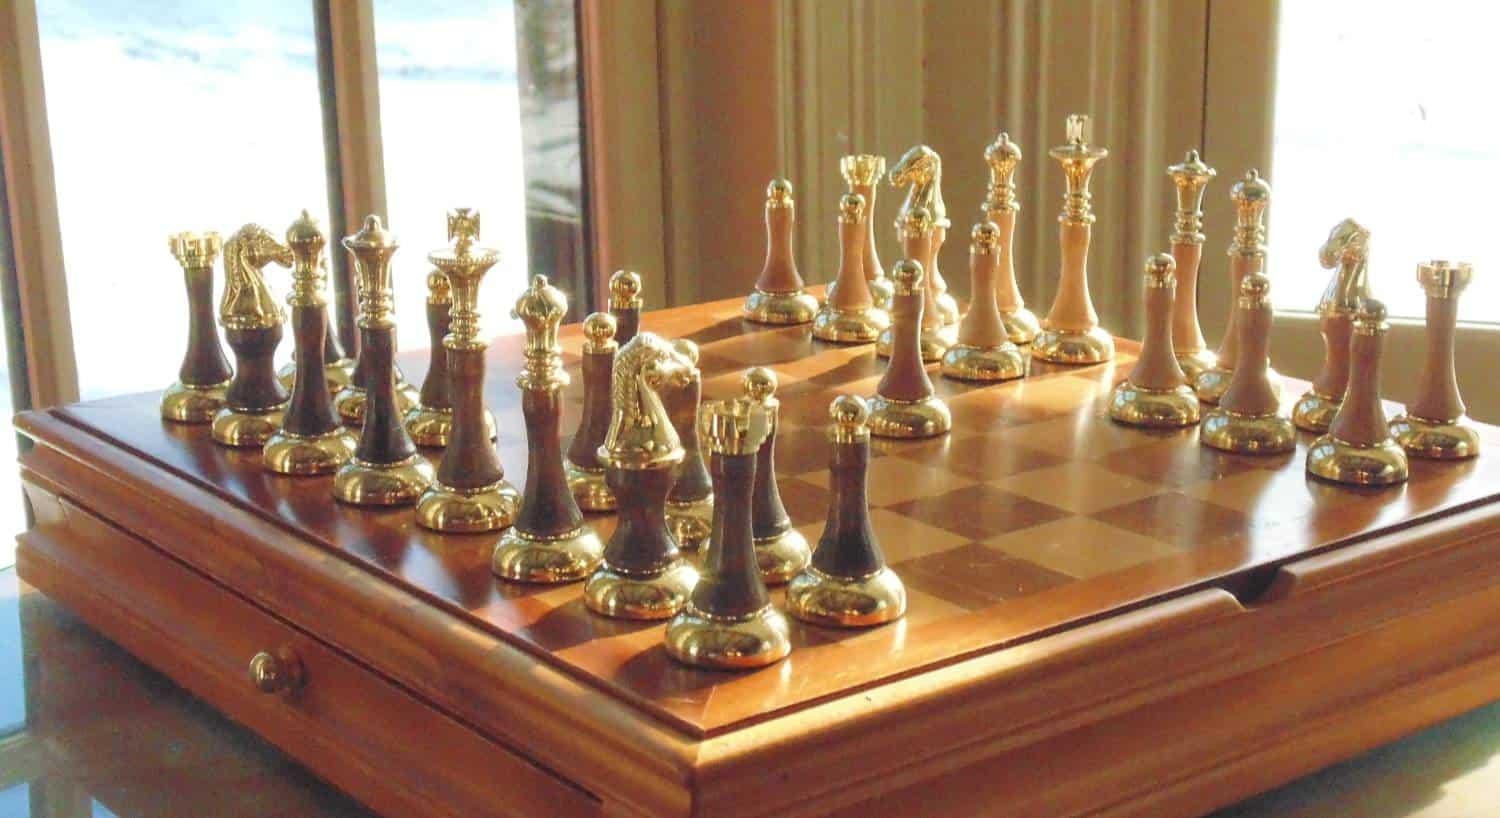 Wooden chess board on top of wooden box with bronze and wood chess pieces